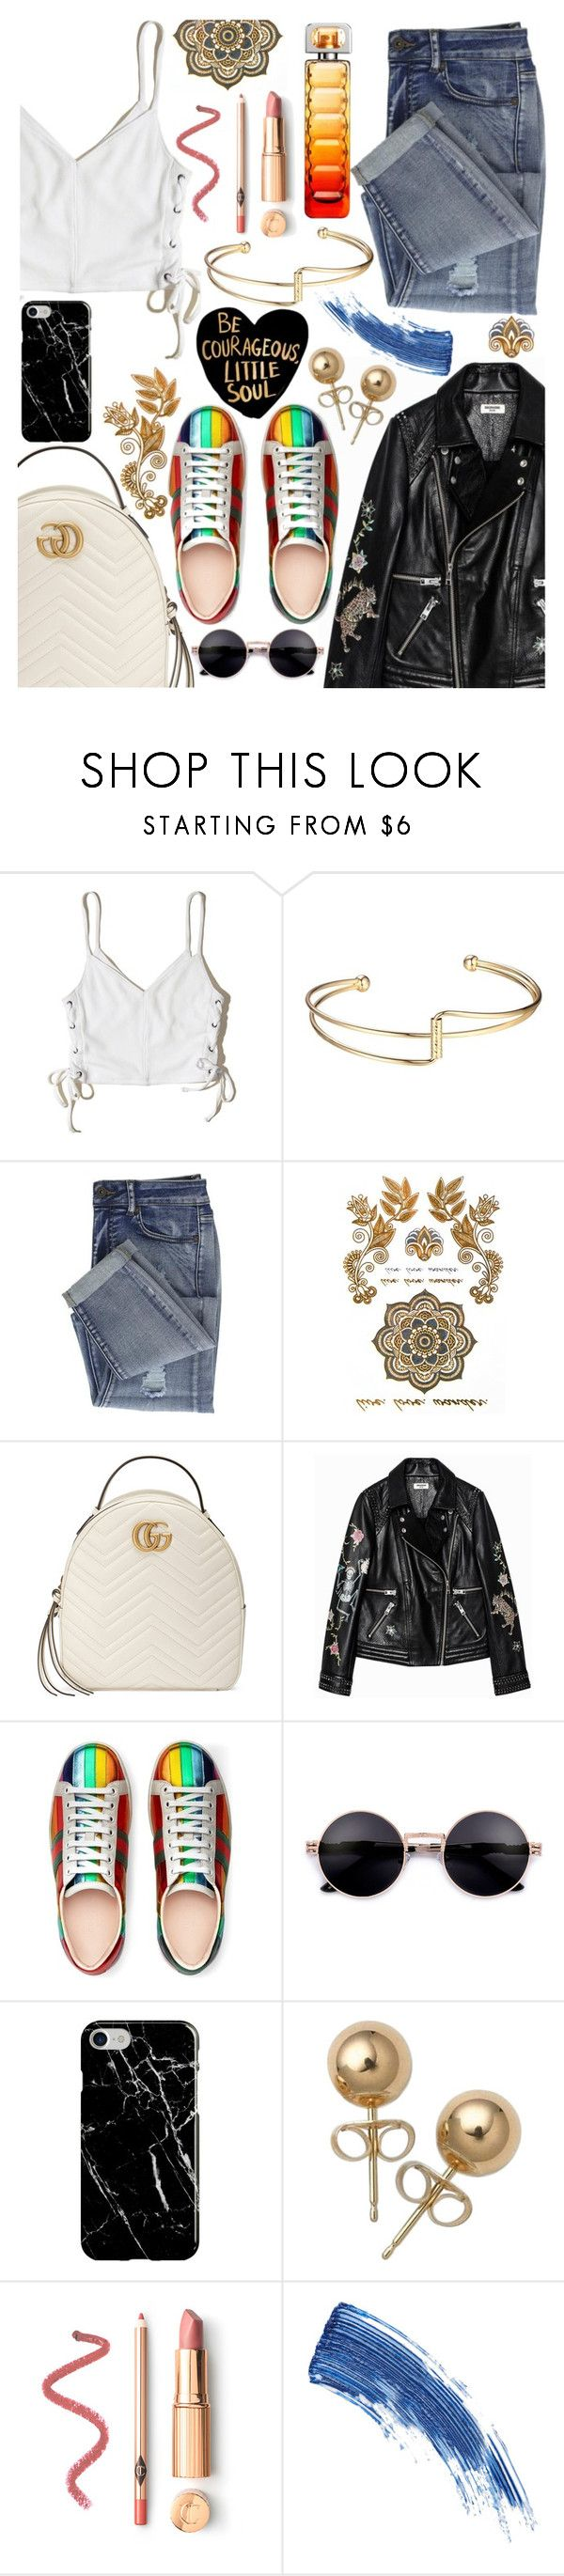 """""""Rock Bottom (Hailee Steinfeld)"""" by superswimmerca ❤ liked on Polyvore featuring Hollister Co., Gucci, Zadig & Voltaire, Recover, Bling Jewelry, Eyeko and HUGO"""